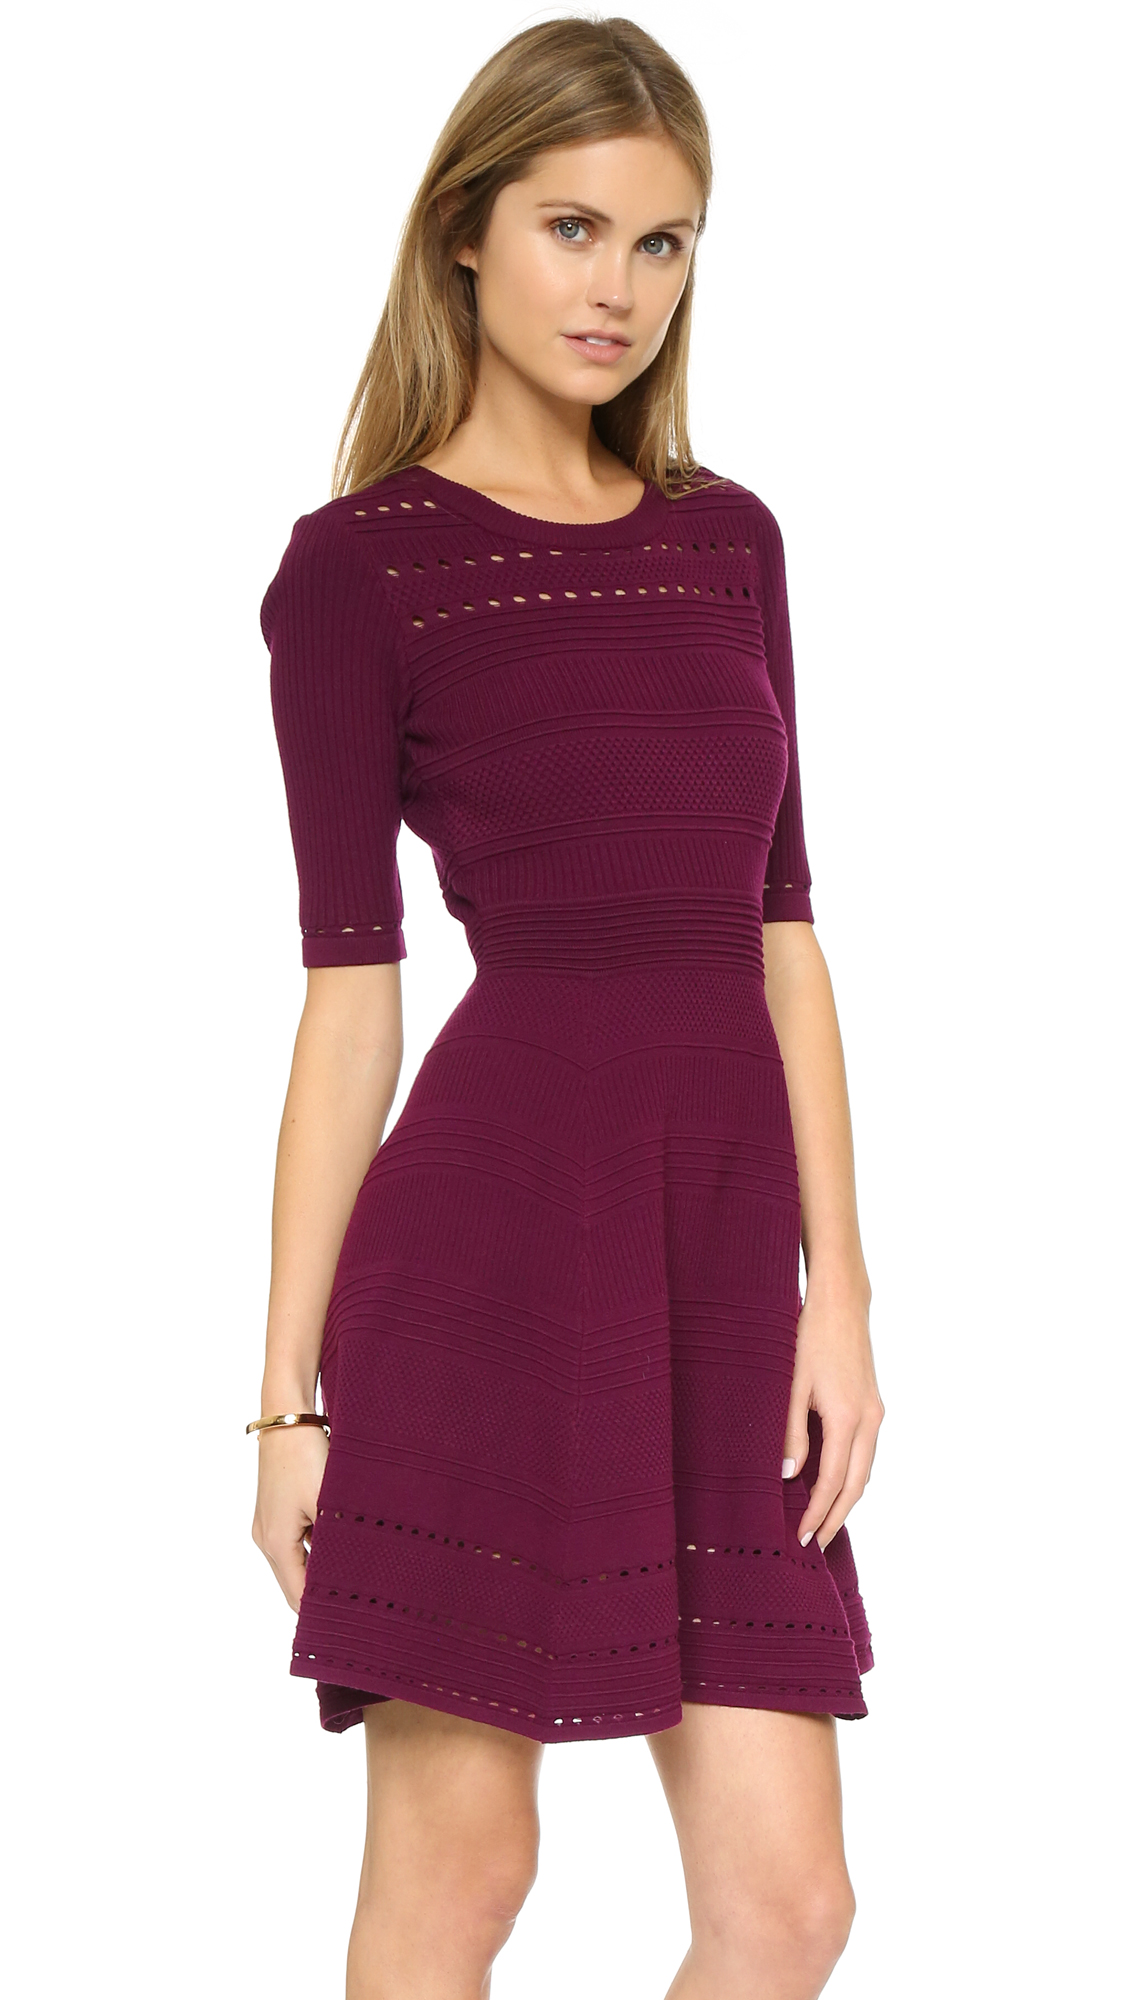 Milly Textured Stitch Flare Dress  1a3128fc4